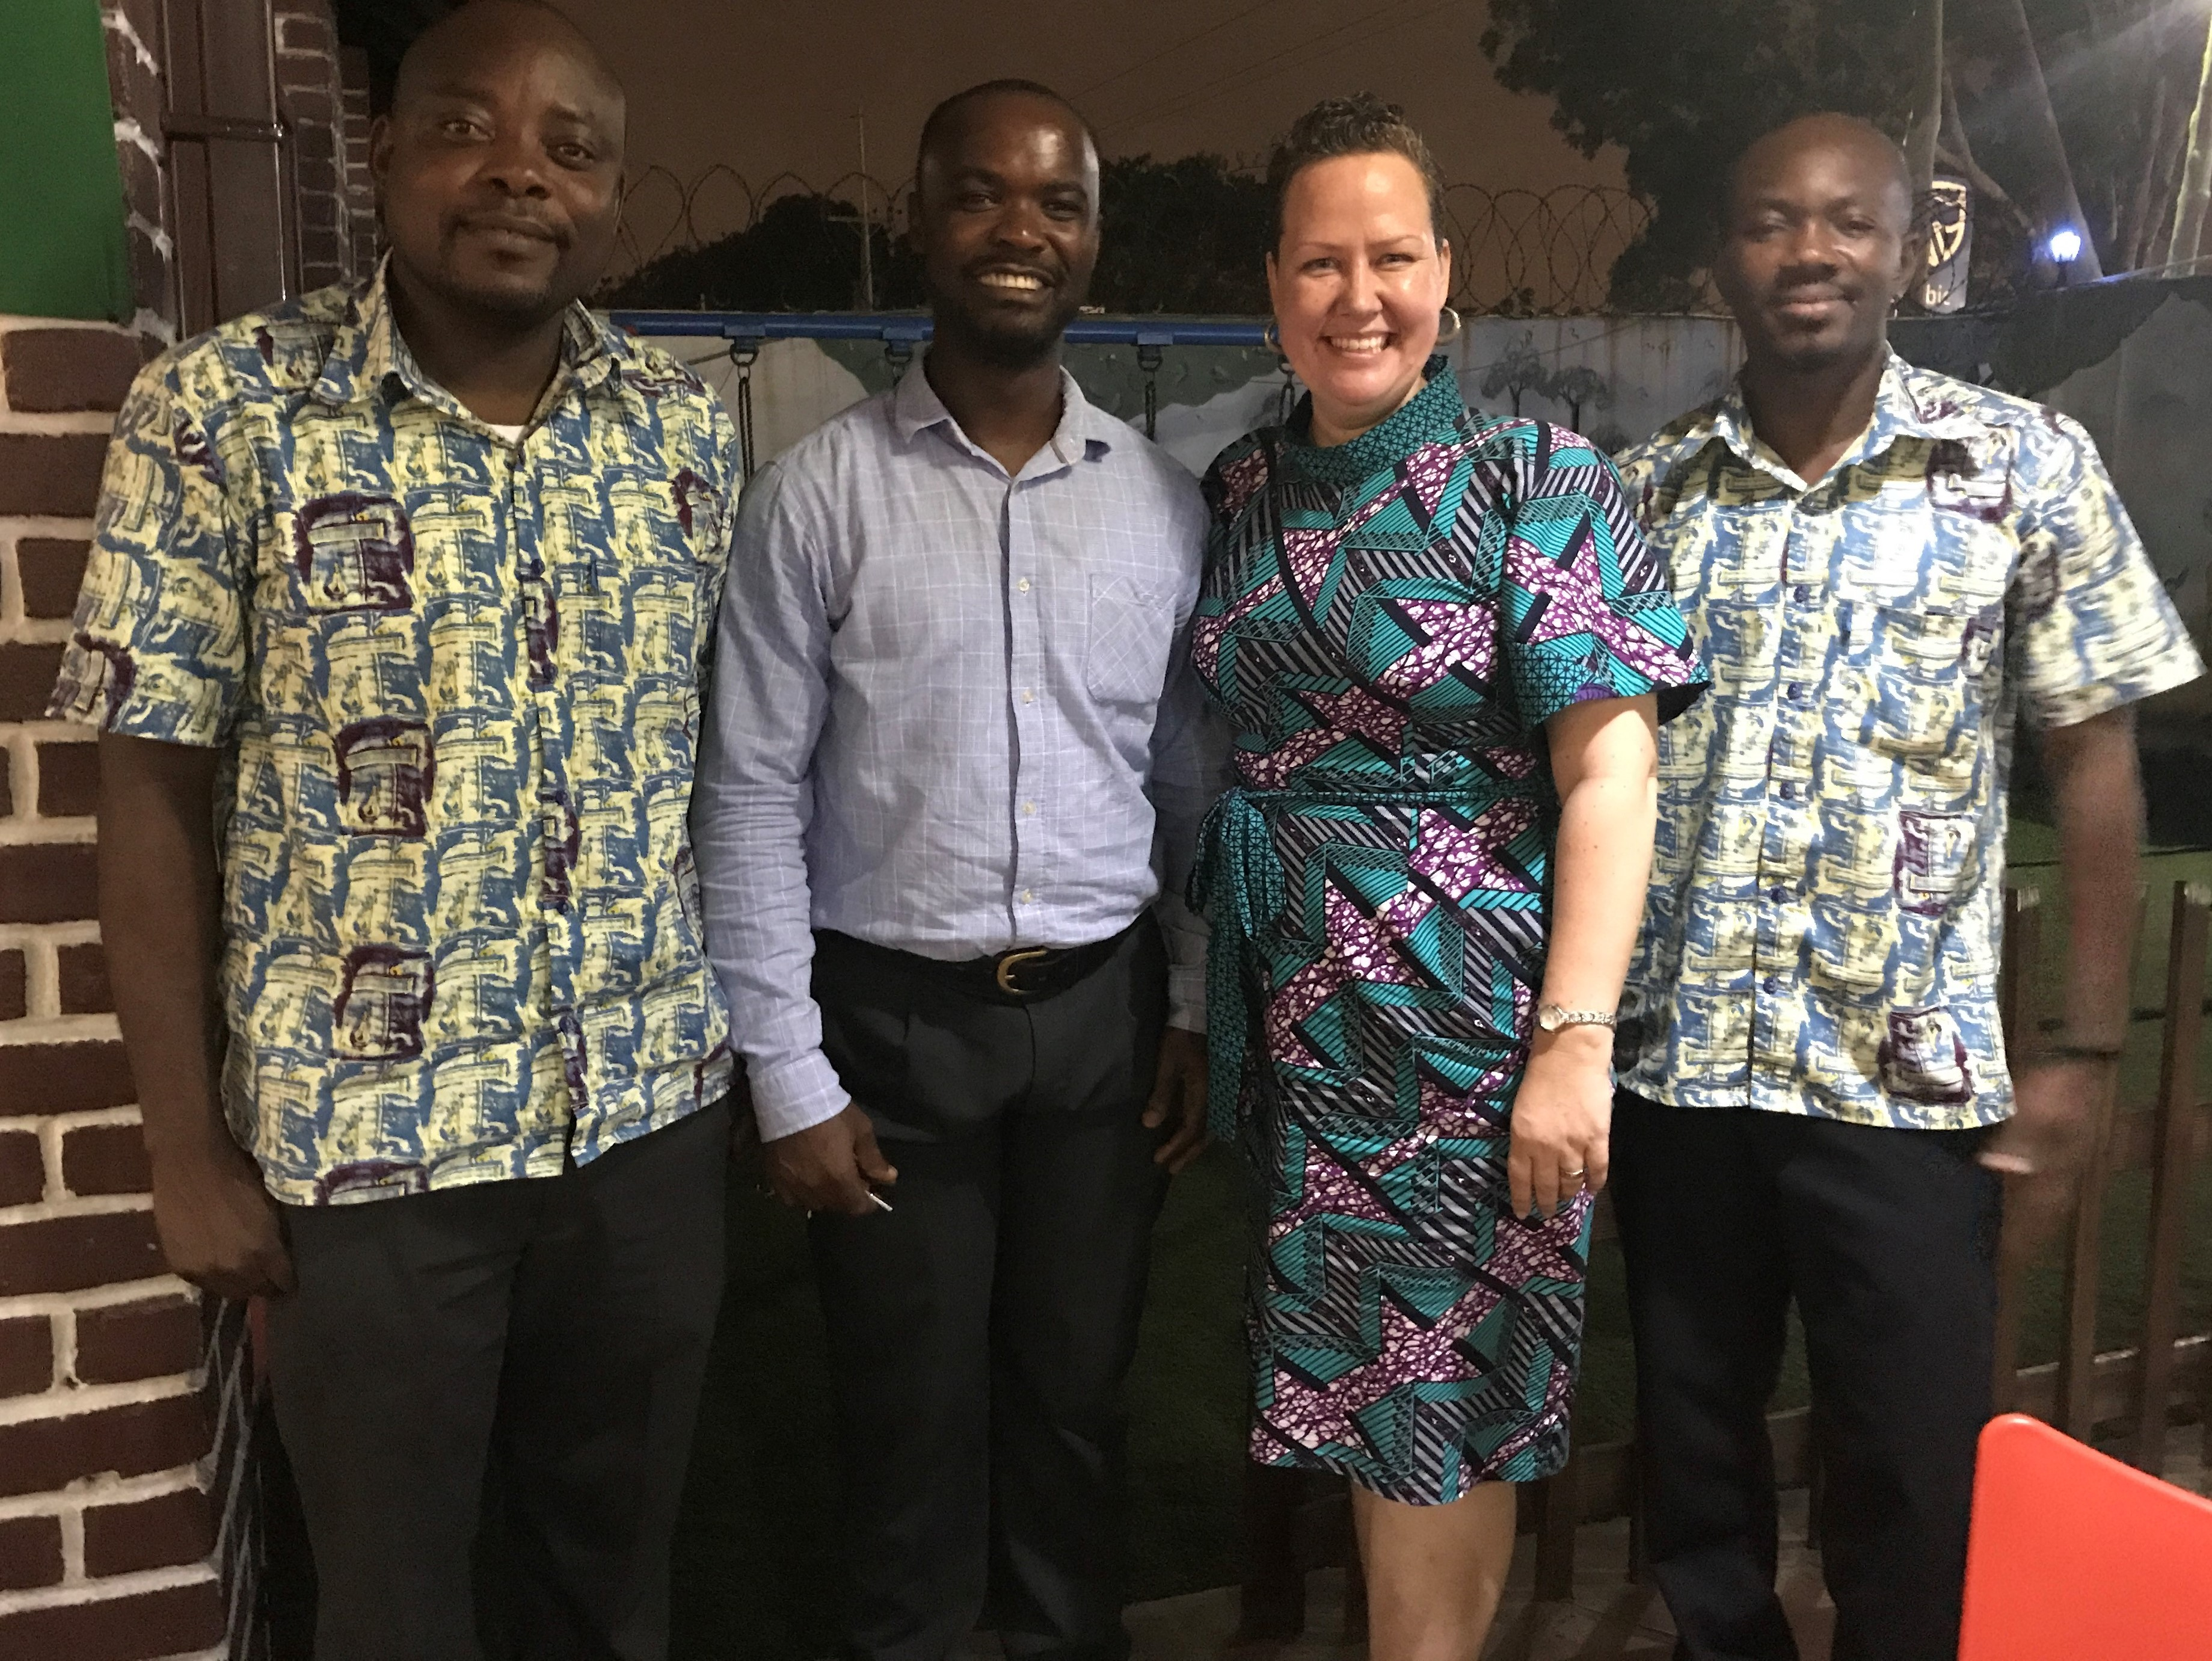 Alumni celebrating Global Alumni Day 2017 in Accra